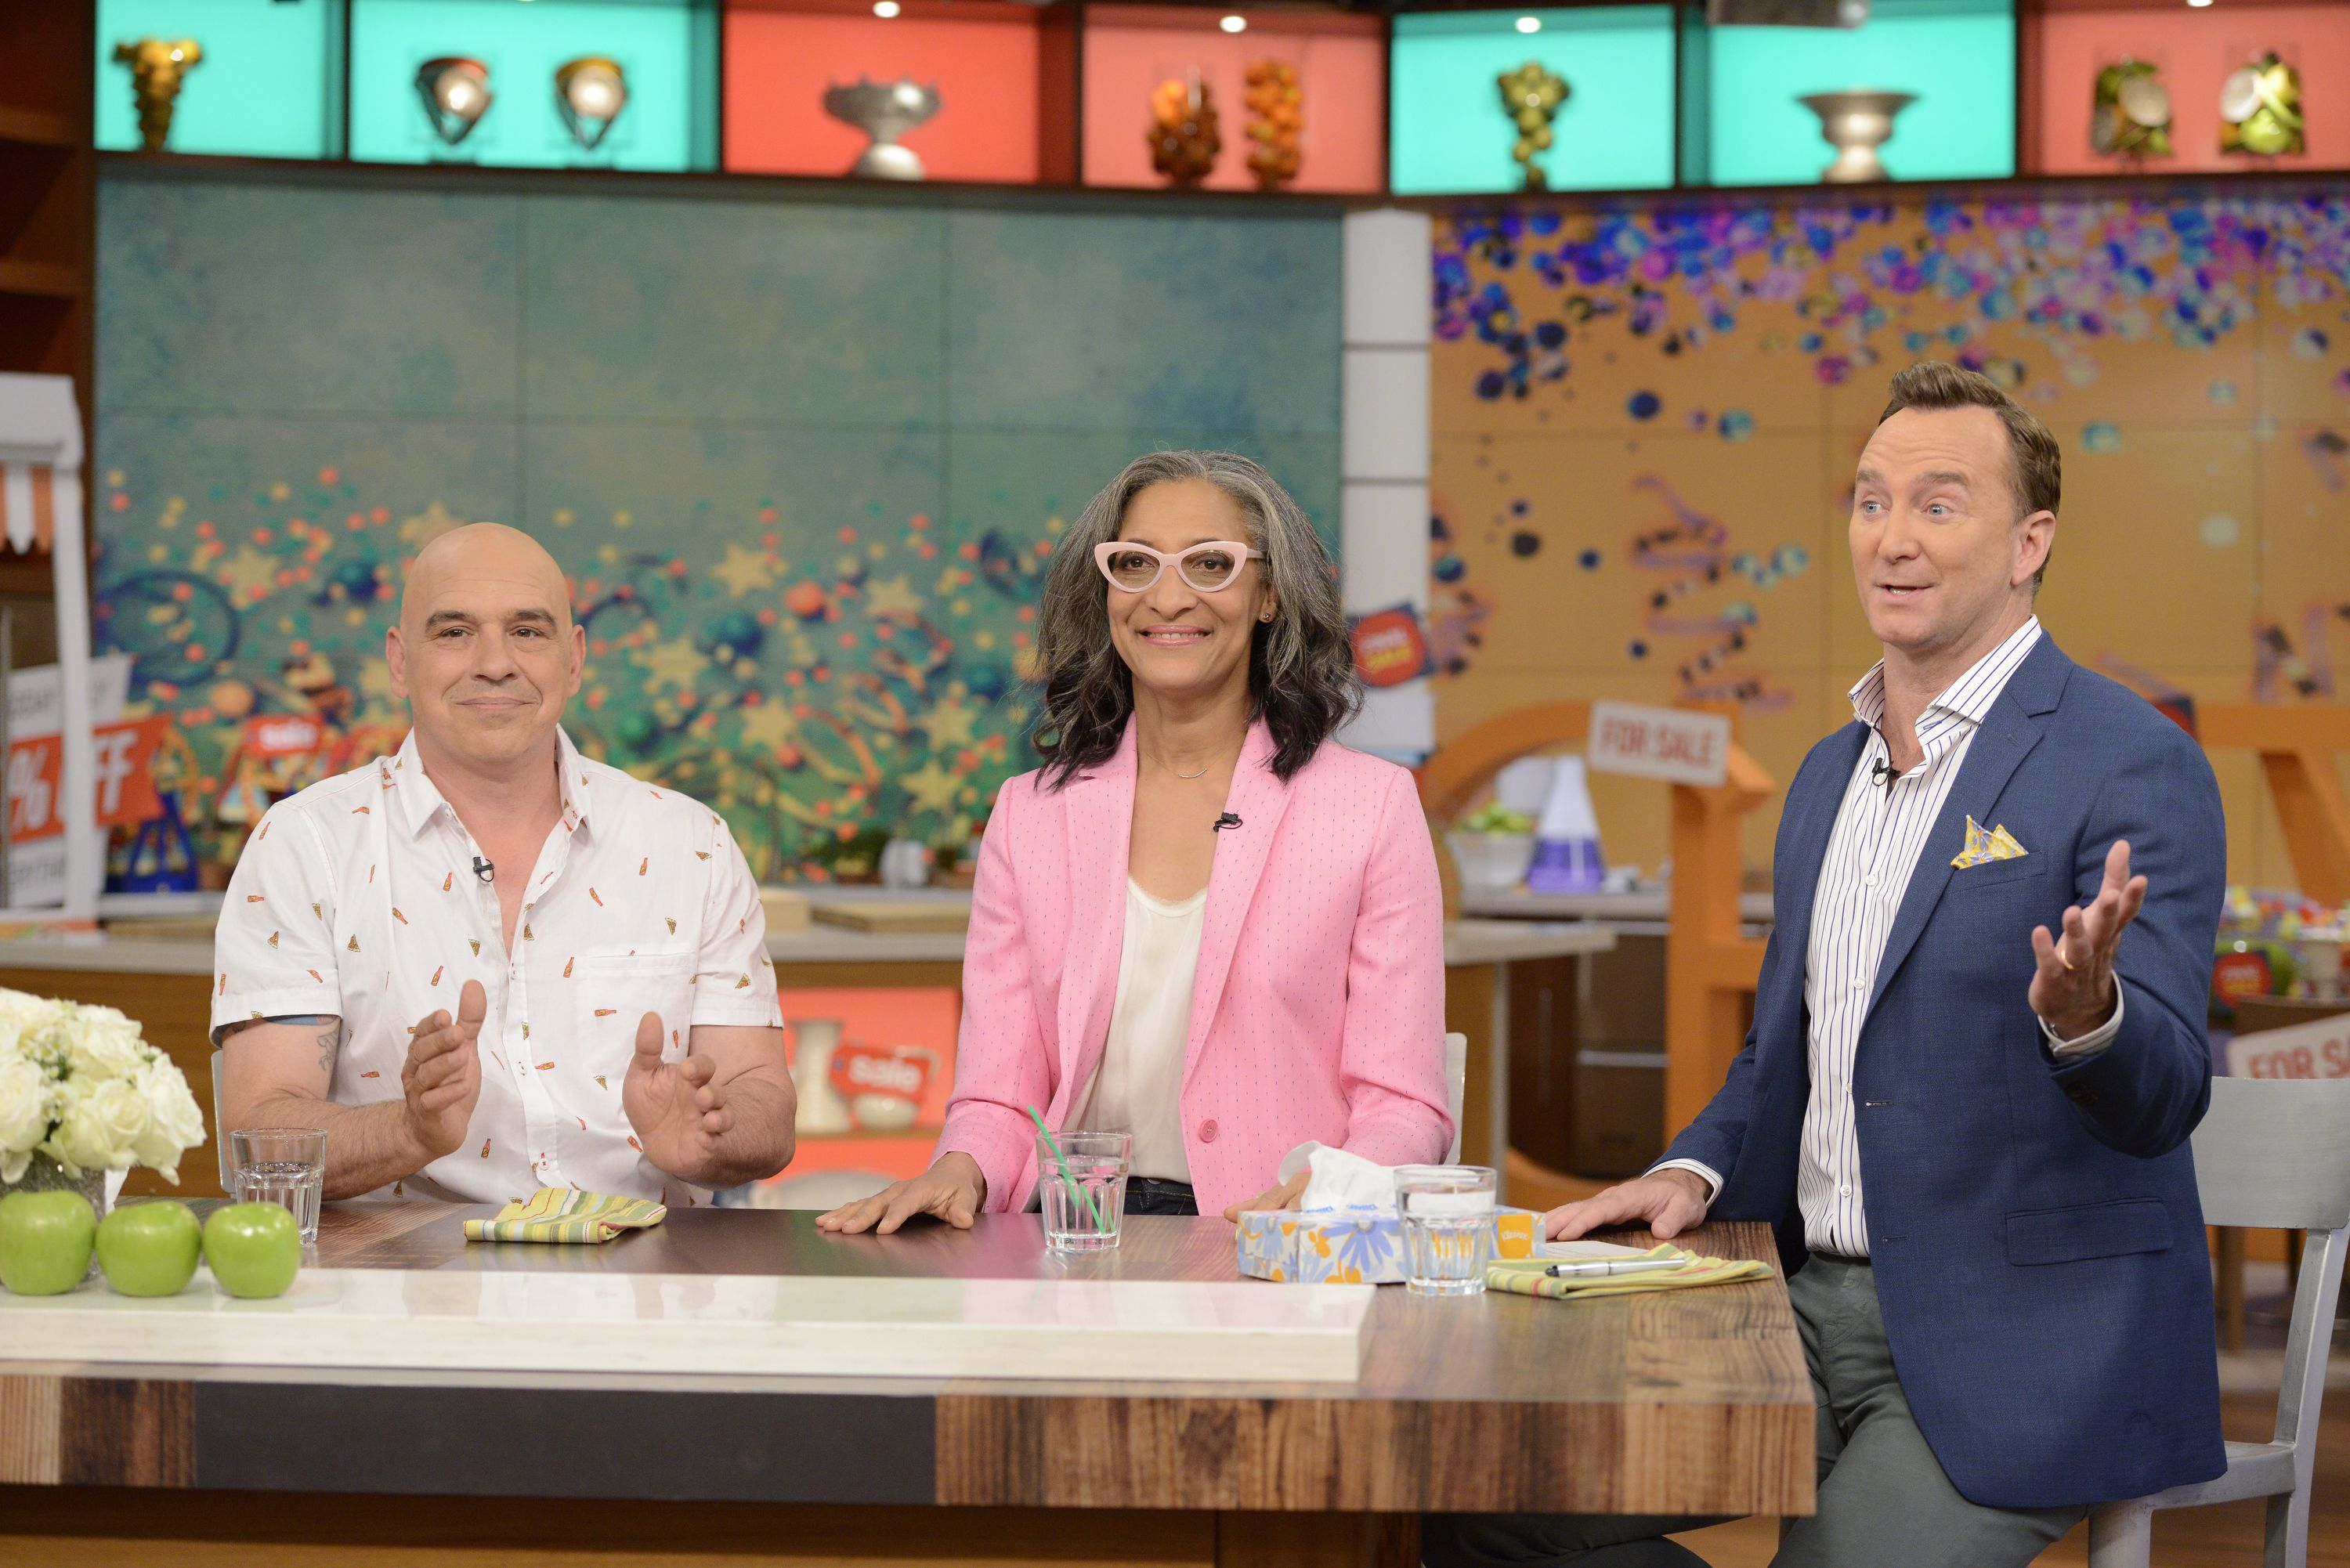 The chew time slot investing is like gambling